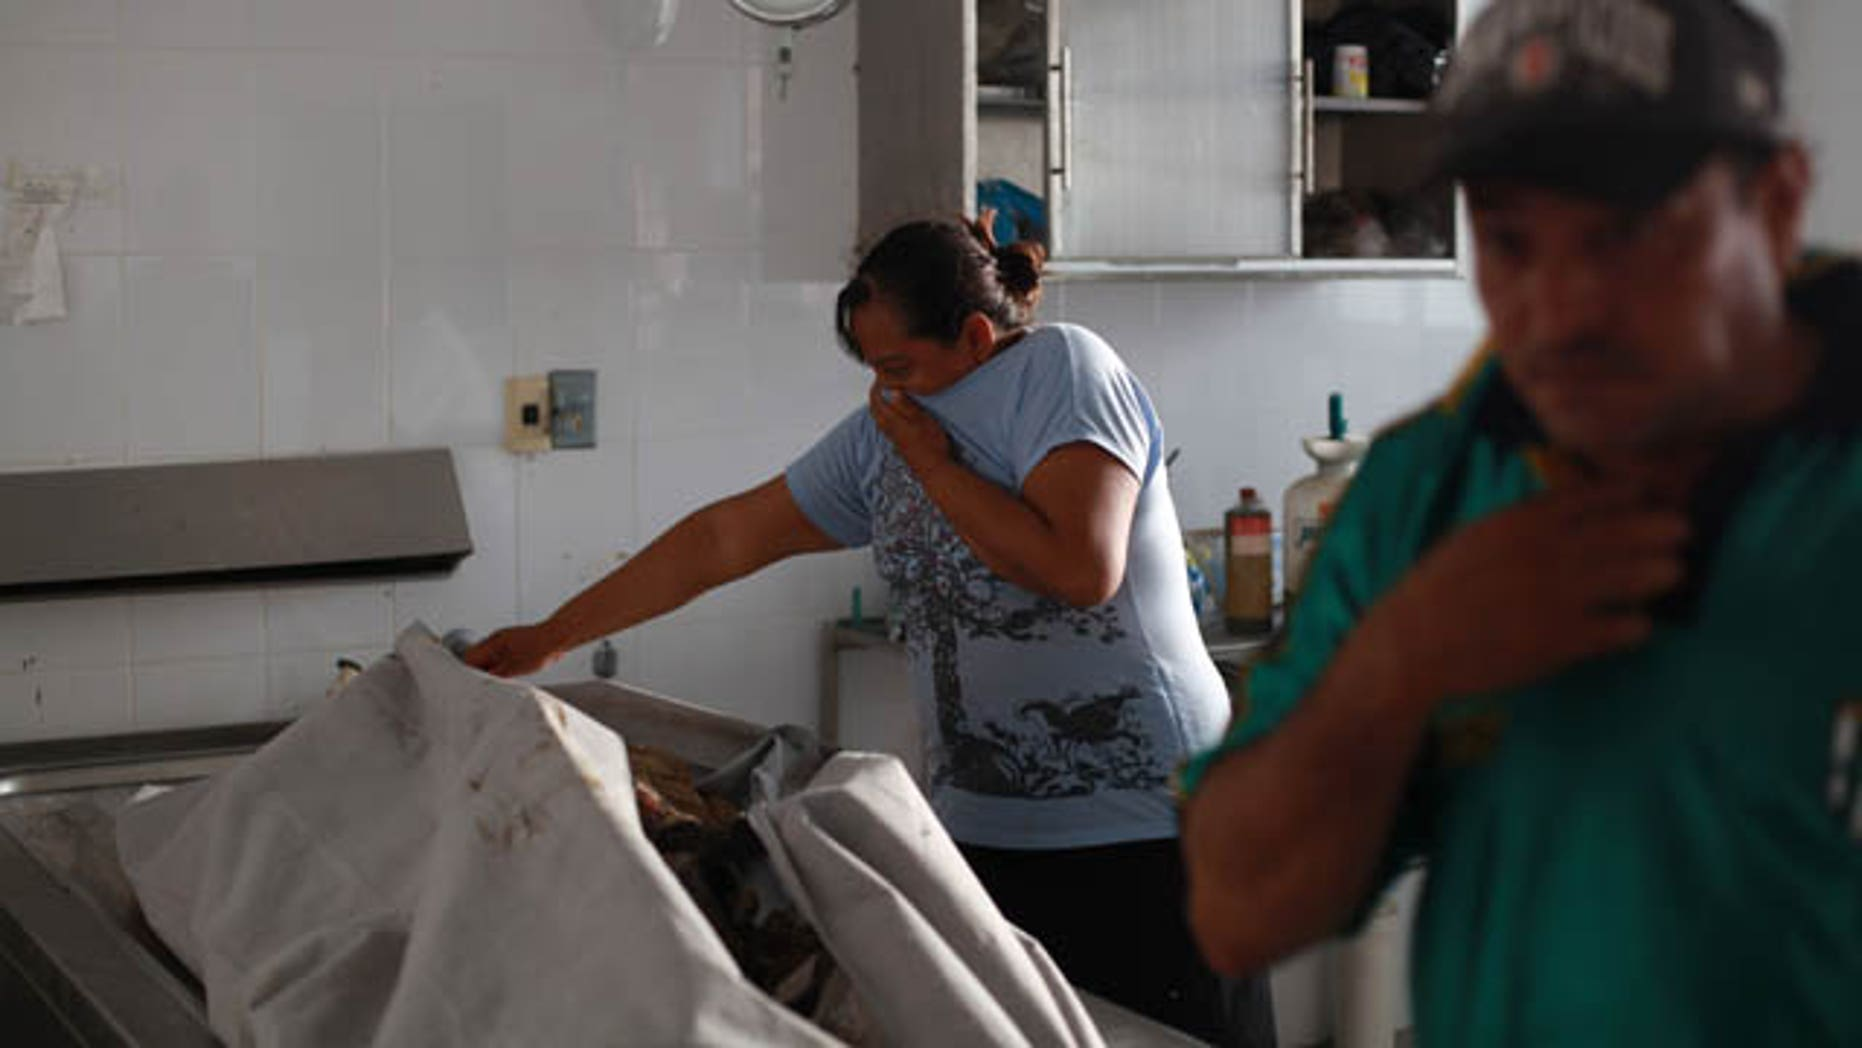 June 18, 2014: Relatives try identify their missing loved ones at the morgue of Cosamaloapan, in Veracruz , Mexico. More than two dozen bodies have been recovered from a mass grave in Veracruz, an eastern Mexican state plagued by attacks on migrants and drug cartel violence, officials said Wednesday. (AP Photo/Felix Marquez)